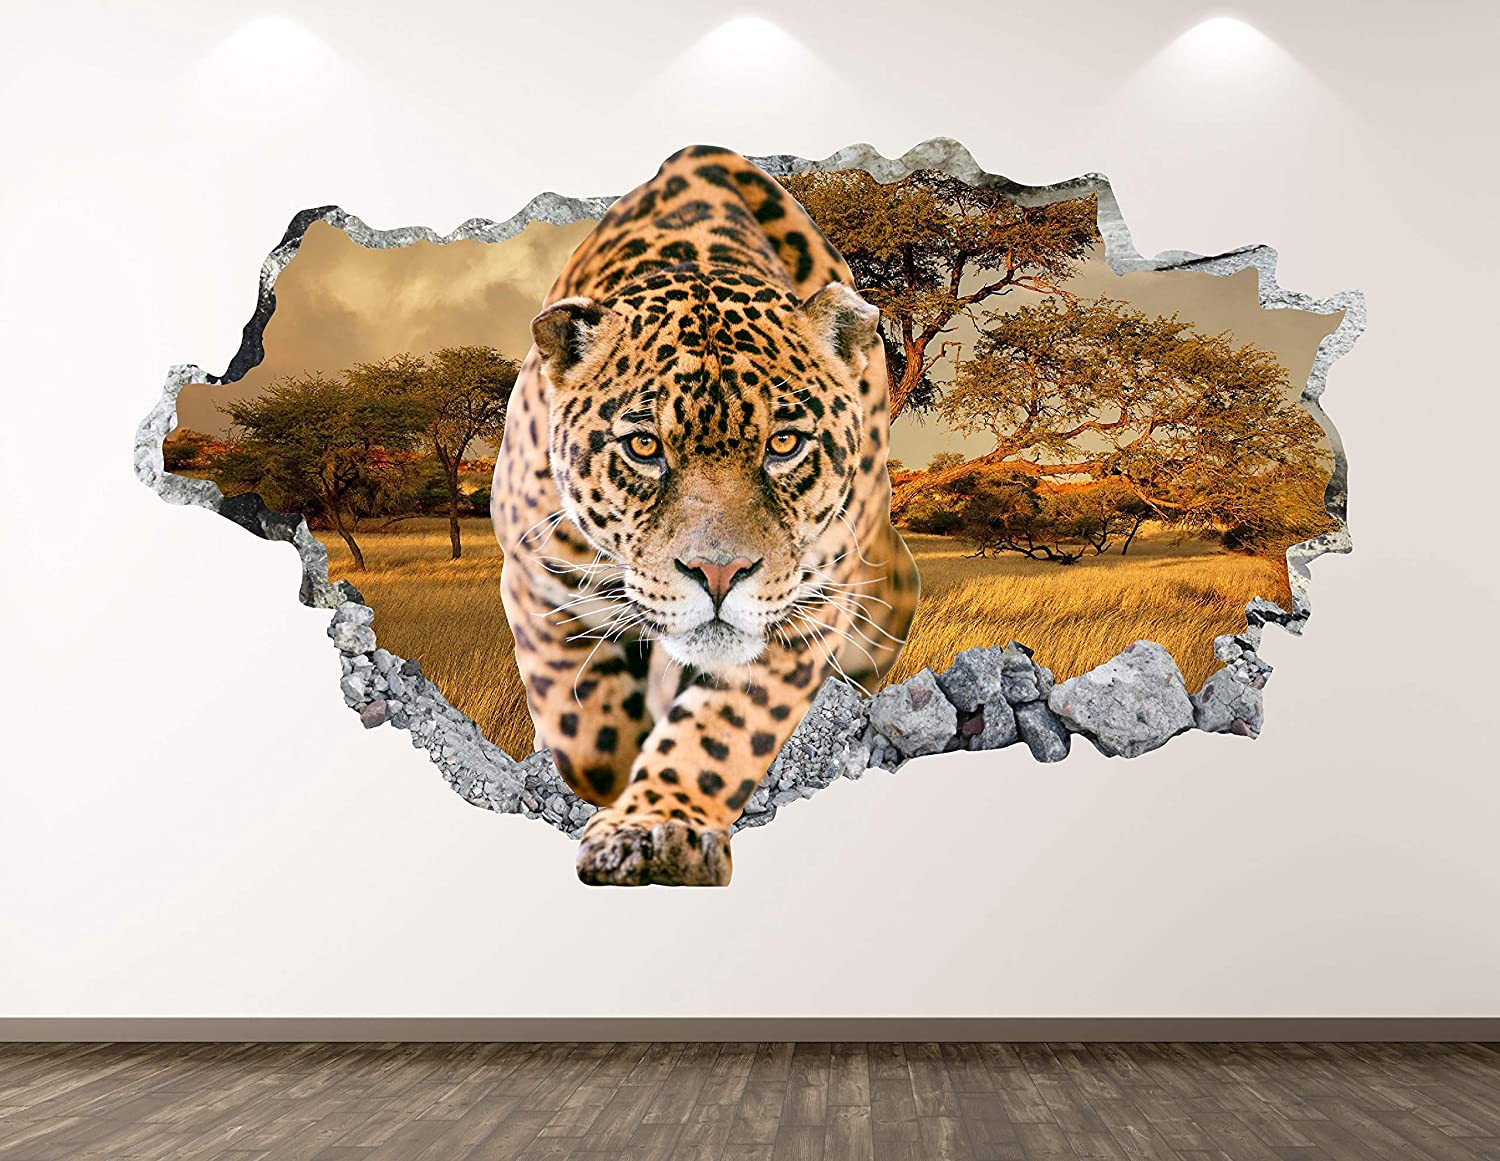 West Mountain Cheetah Wall Decal Art Sti Smashed Safety and trust Decor 3D Animal Shipping included